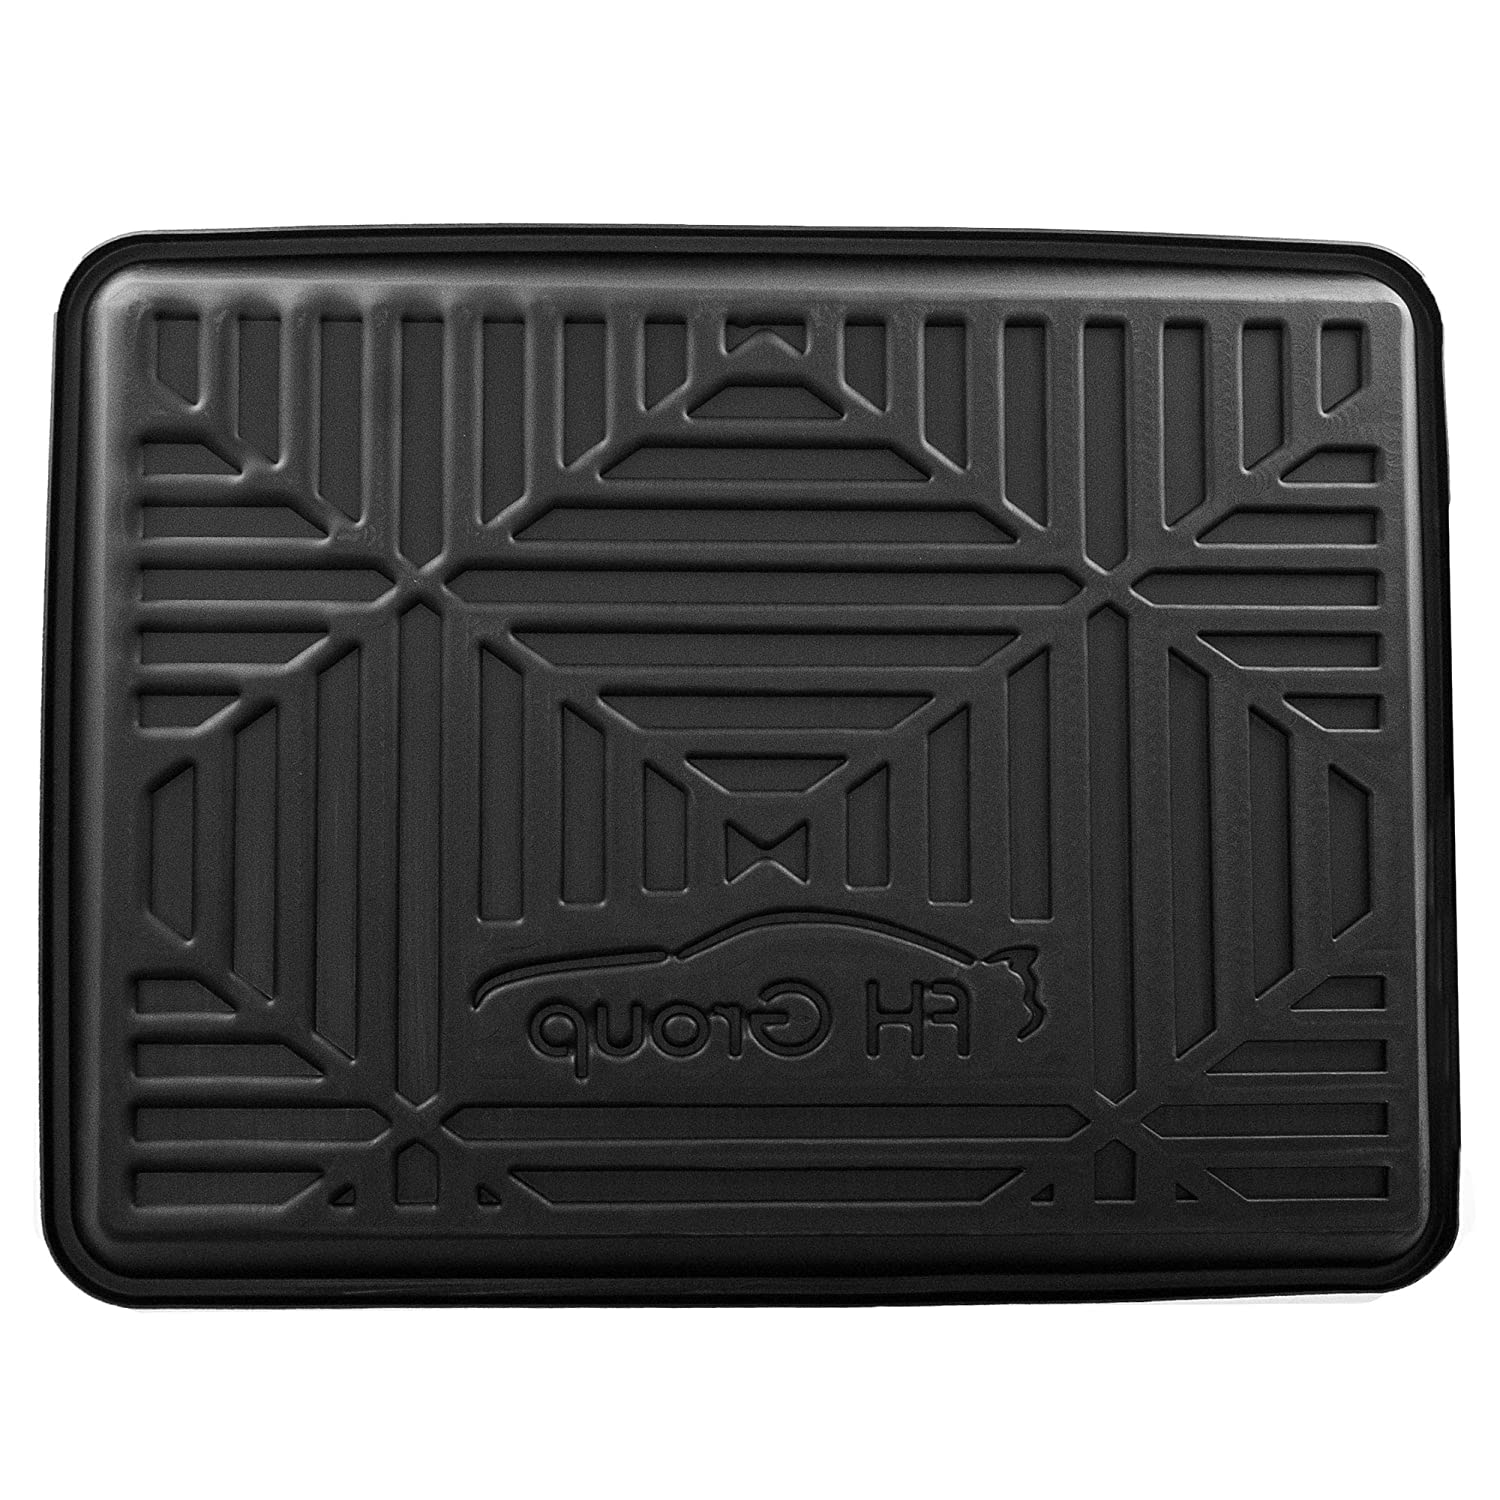 2002 2001 2003 GGBAILEY D2805A-F1A-GY-LP Custom Fit Automotive Carpet Floor Mats for 1999 2004 Jeep Grand Cherokee Grey Loop Driver /& Passenger 2000